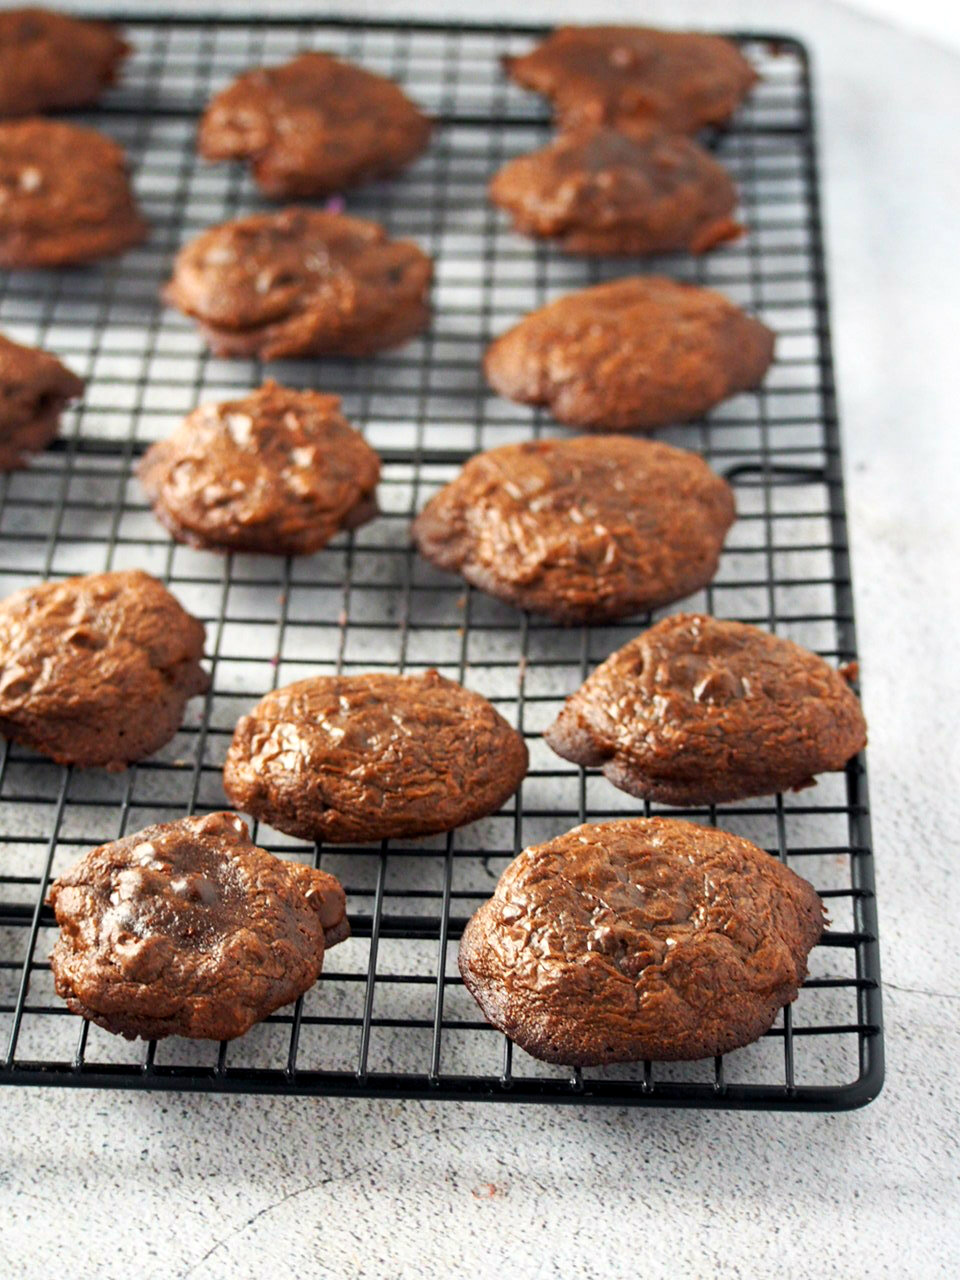 Freshly baked brownie cookies cooling on a wire rack.